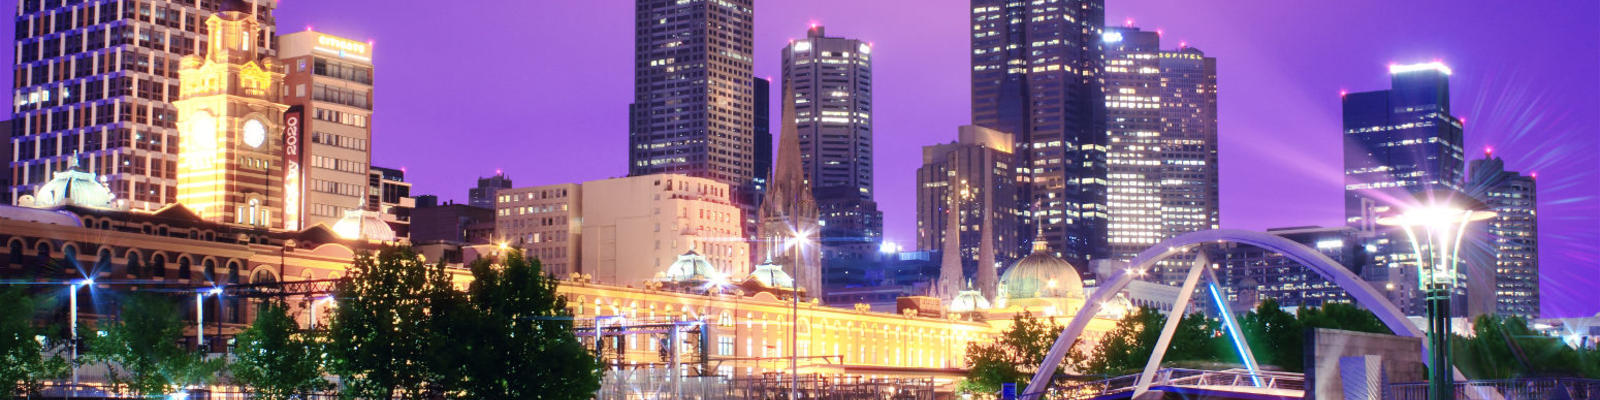 A view of Melbourne over the river at night